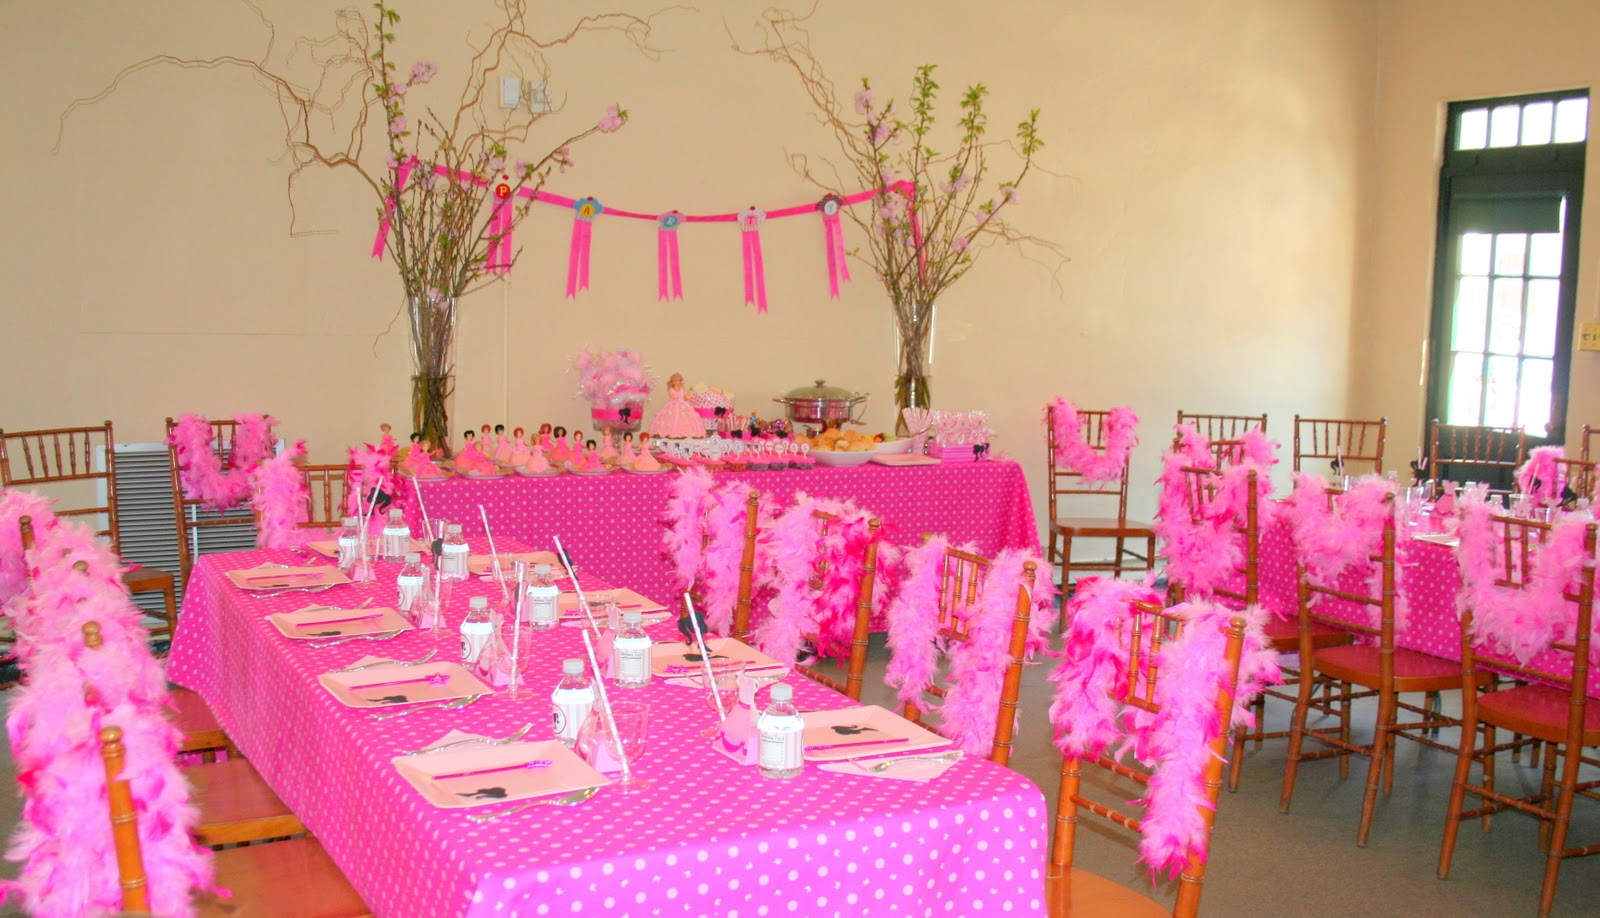 Swanky chic fete pink barbie party a 5th birthday party for Decoration barbie